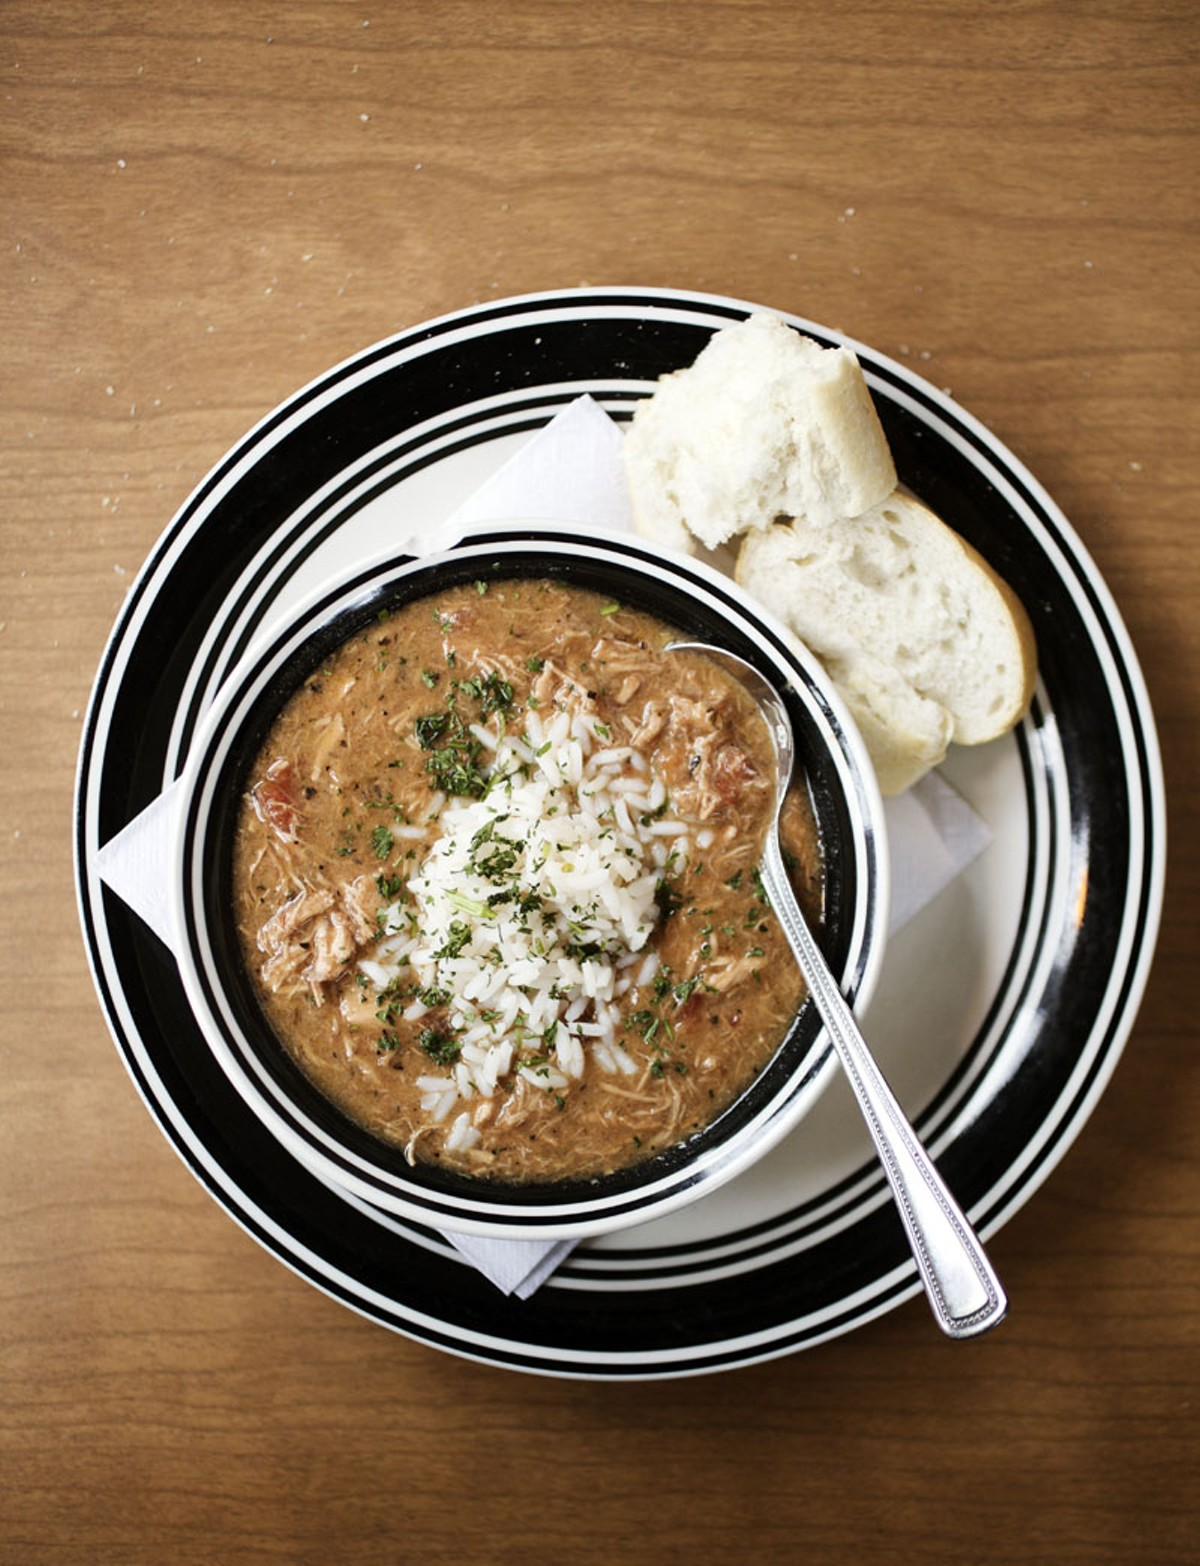 Riverbend's chicken and andouille gumbo.